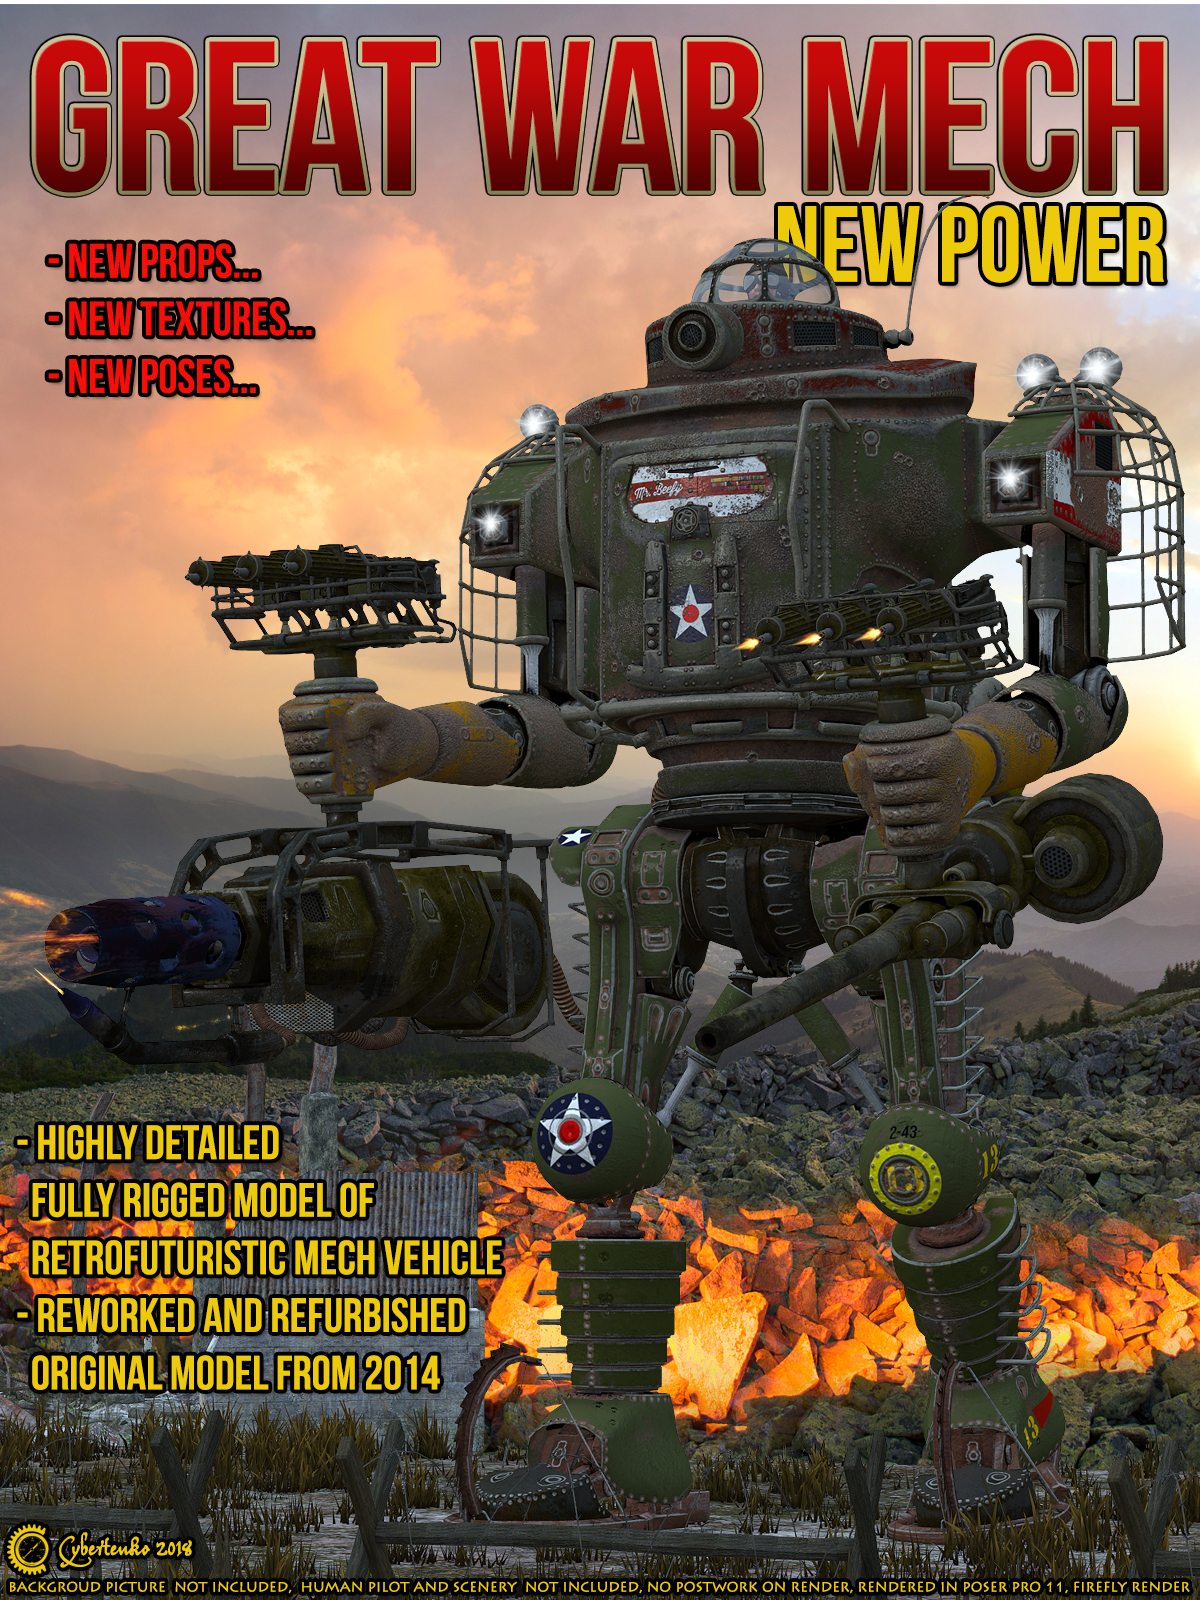 Great War Mech - New Power  by Cybertenko